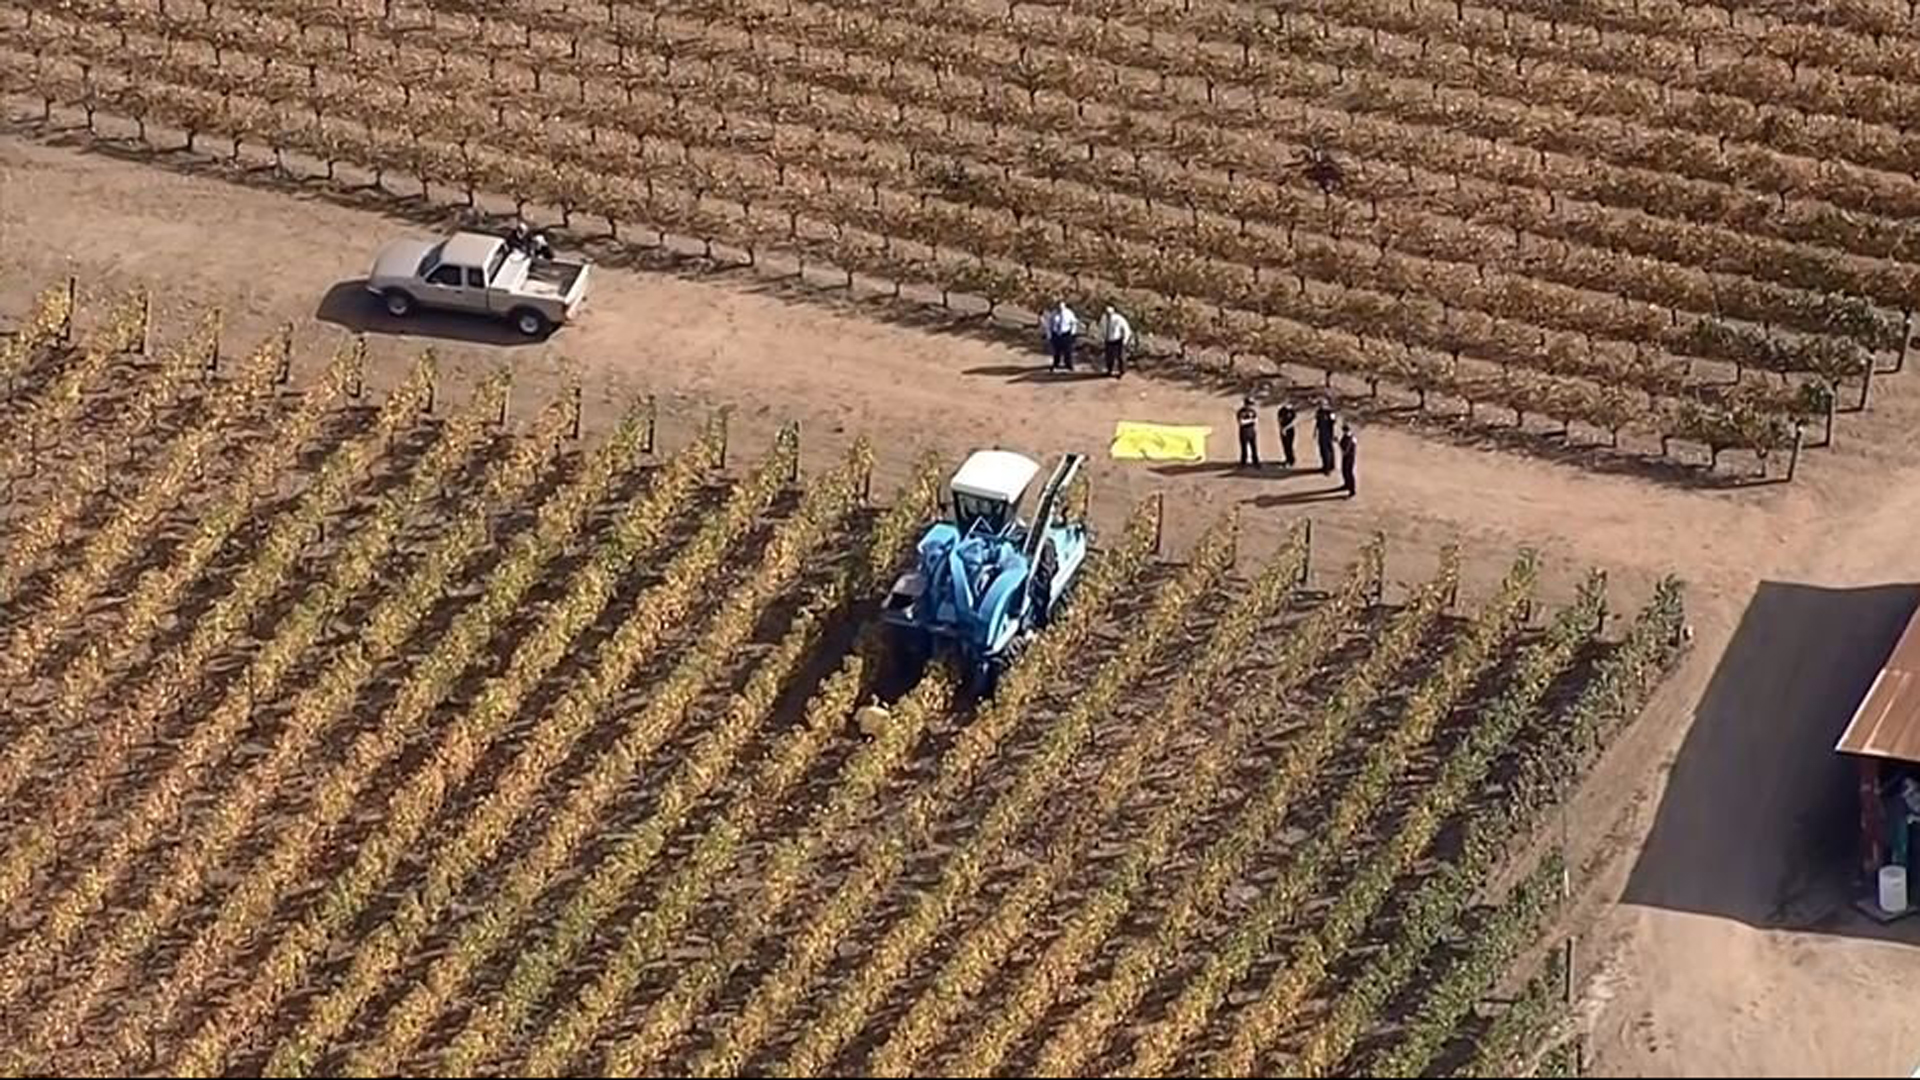 A Napa vineyard worker was killed in an accident involving a grape harvesting machine, authorities said. (Credit: KPIX via CNN Wire)